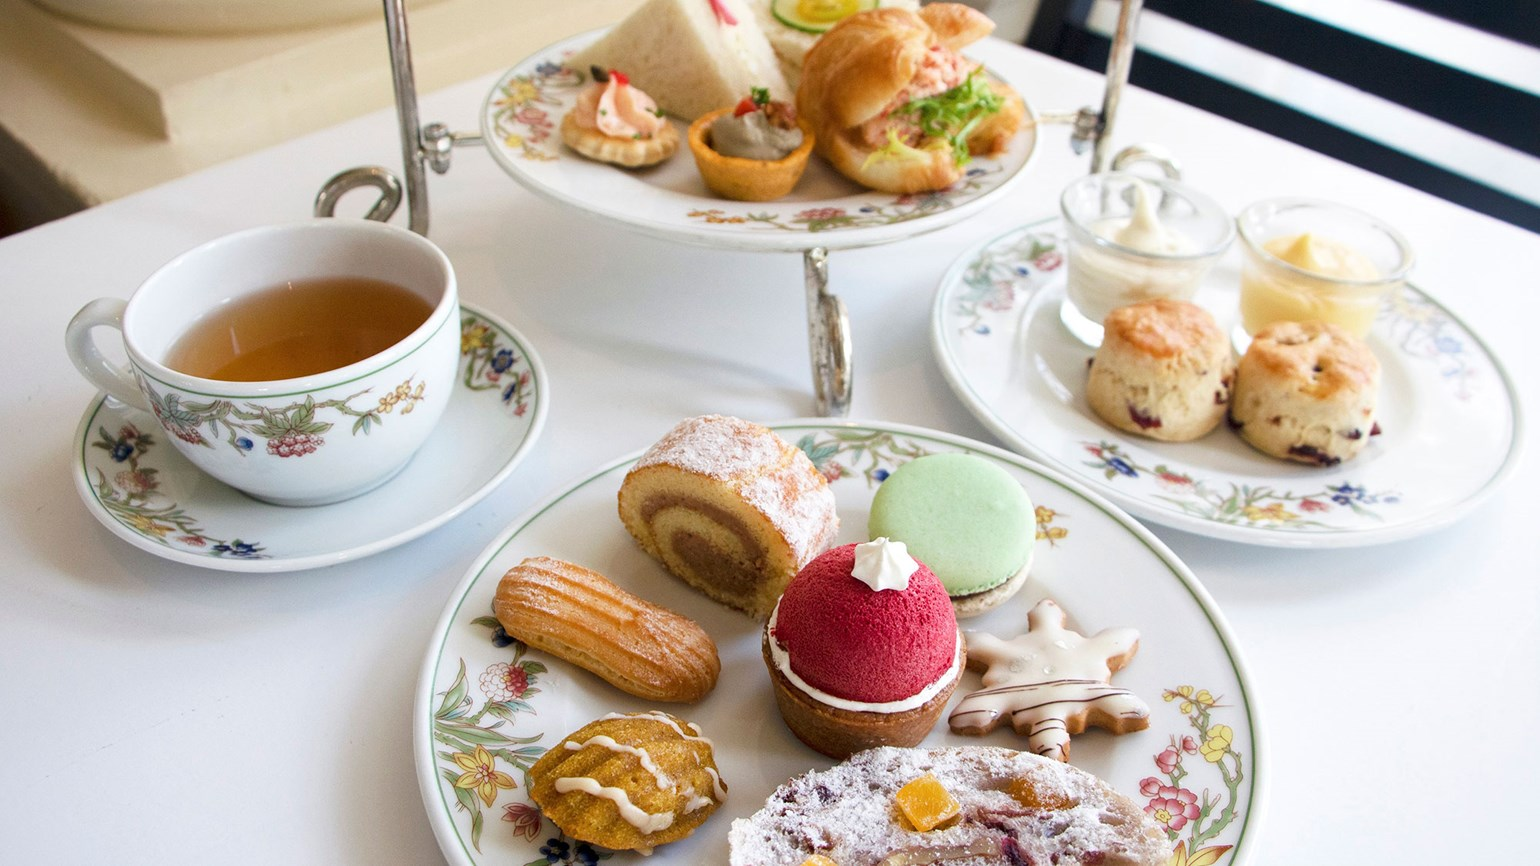 Moana Surfrider revives holiday tea service